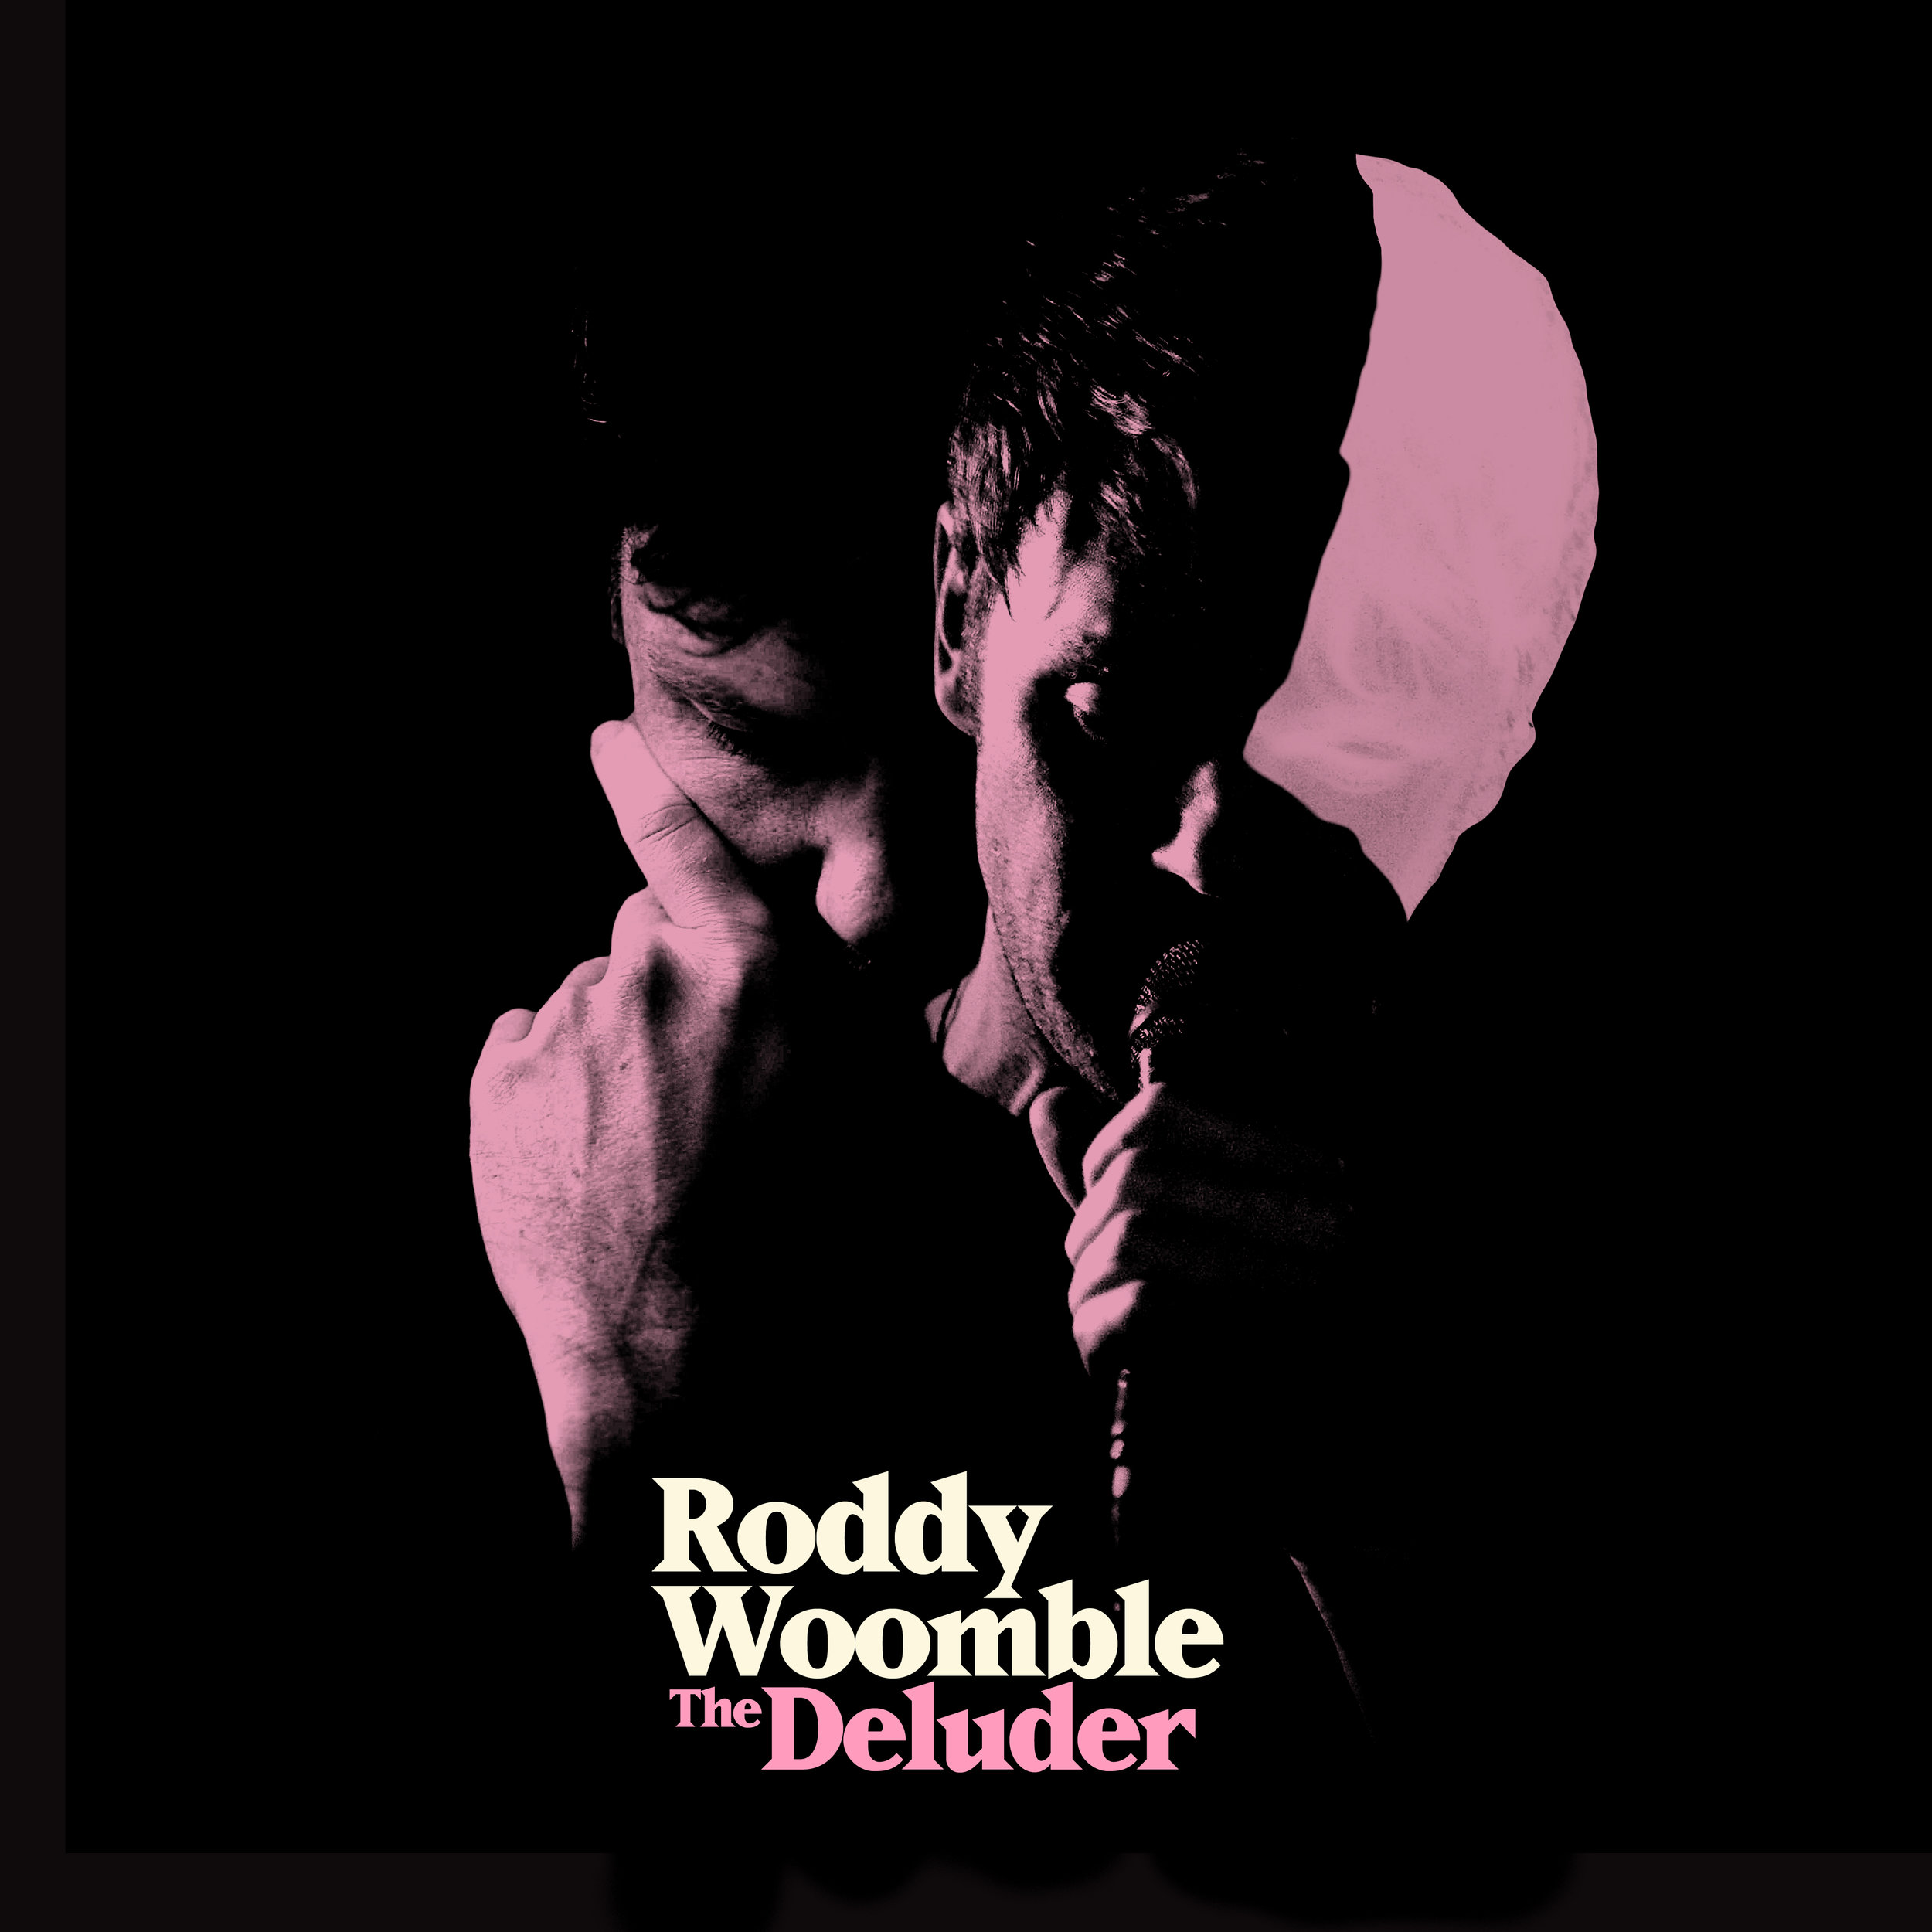 Roddy Woomble - The Deluder cover (with text).jpg